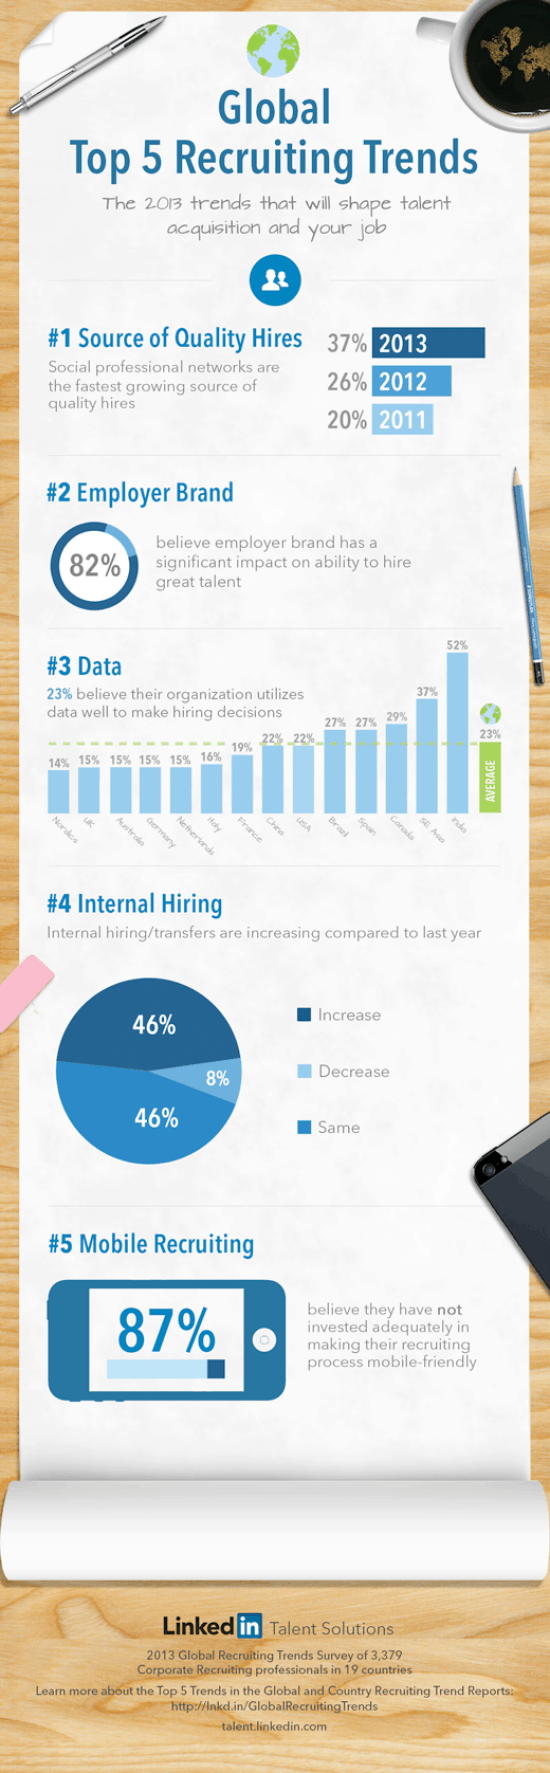 Recruiting-Trends-Infographic-2013